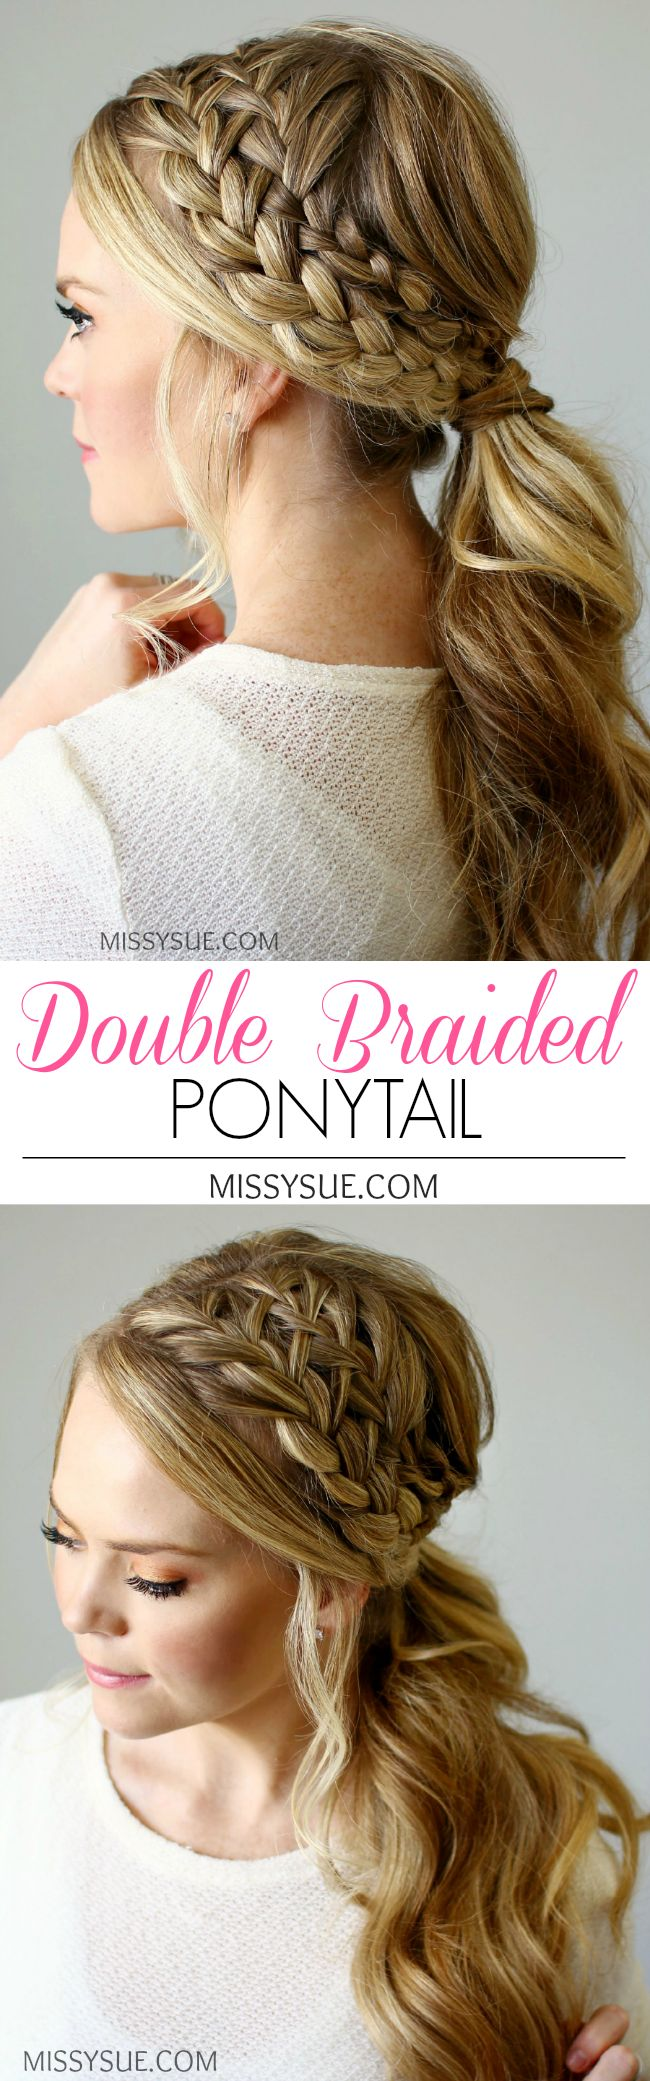 Astounding 1000 Ideas About Easy Braided Hairstyles On Pinterest Types Of Short Hairstyles For Black Women Fulllsitofus